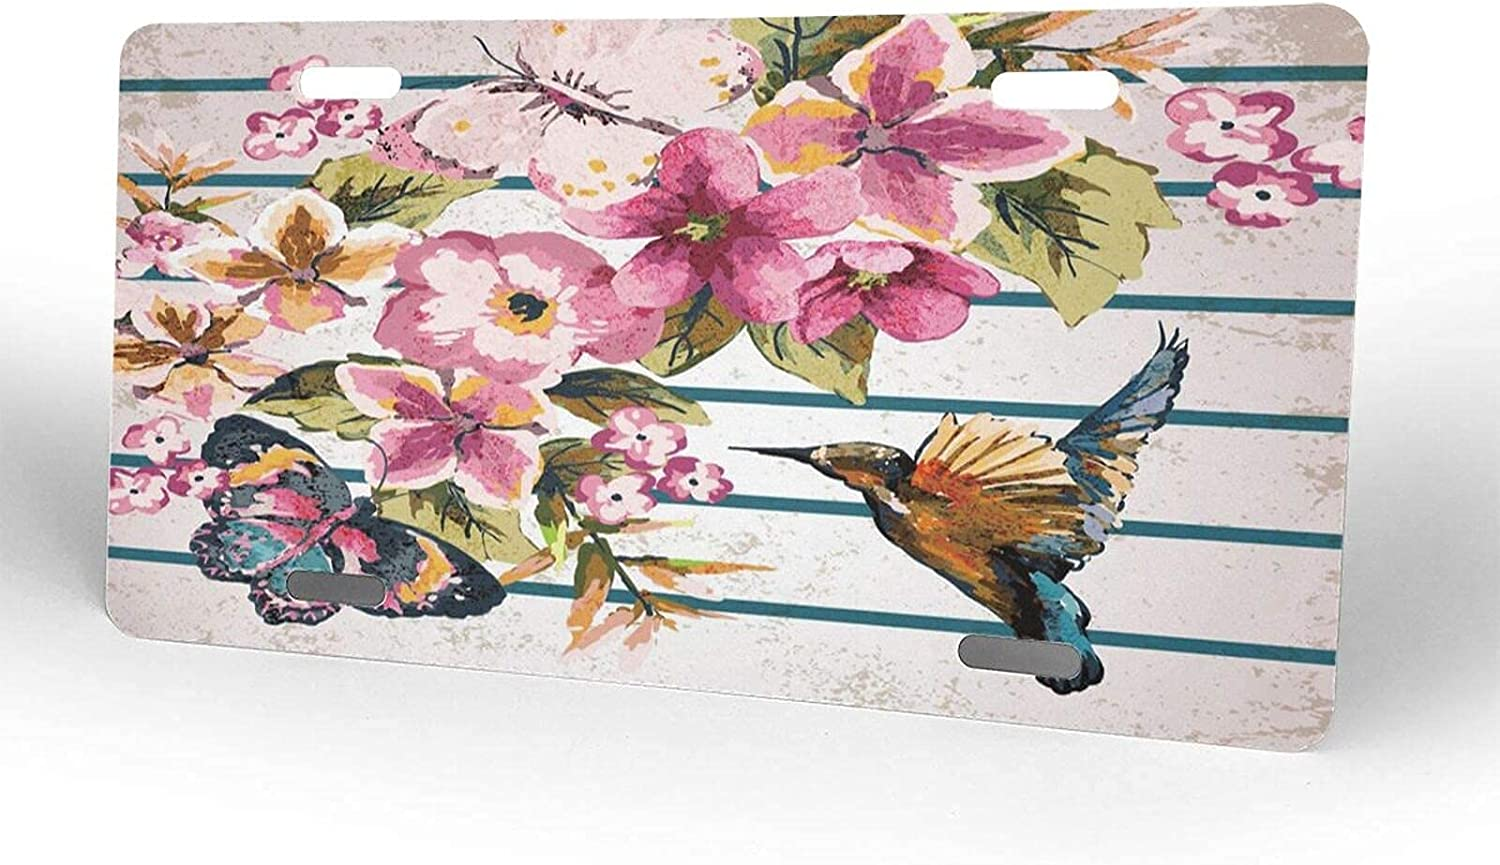 yiliusu Bird and Butterfly License Novelty Financial sales sale Cover 2021new shipping free shipping Lic Plate Metal